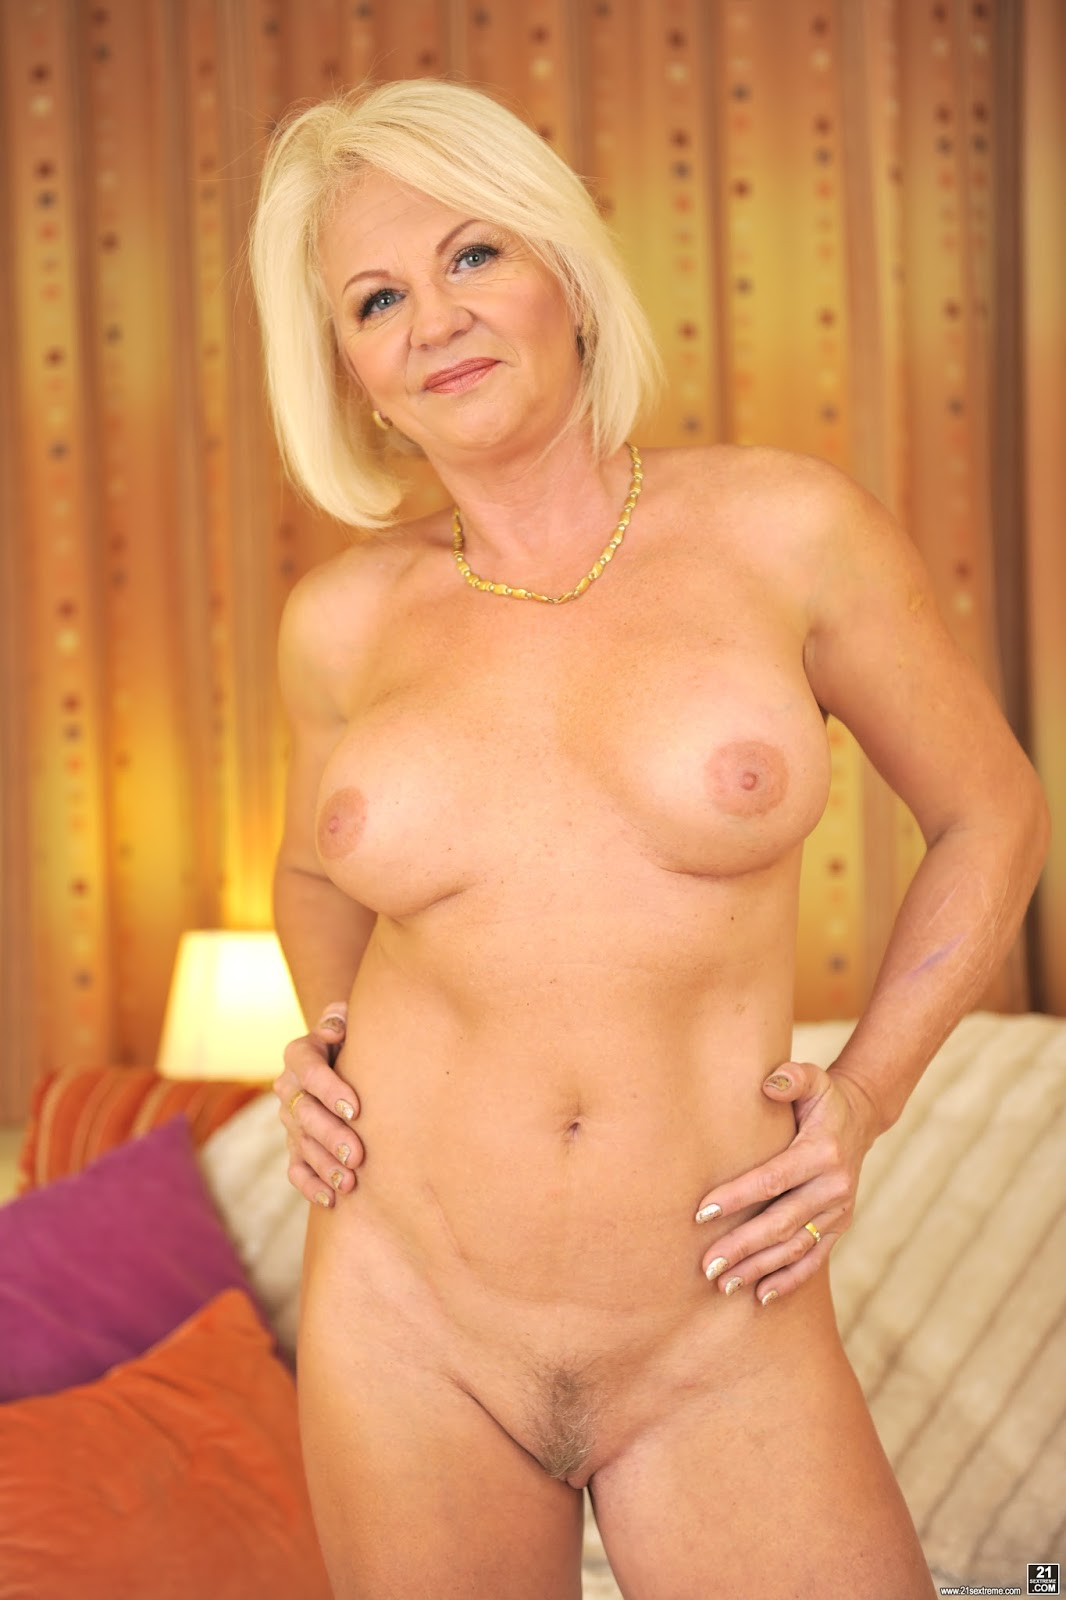 Archive Of Old Women Anett Sex Pics  Video-4462